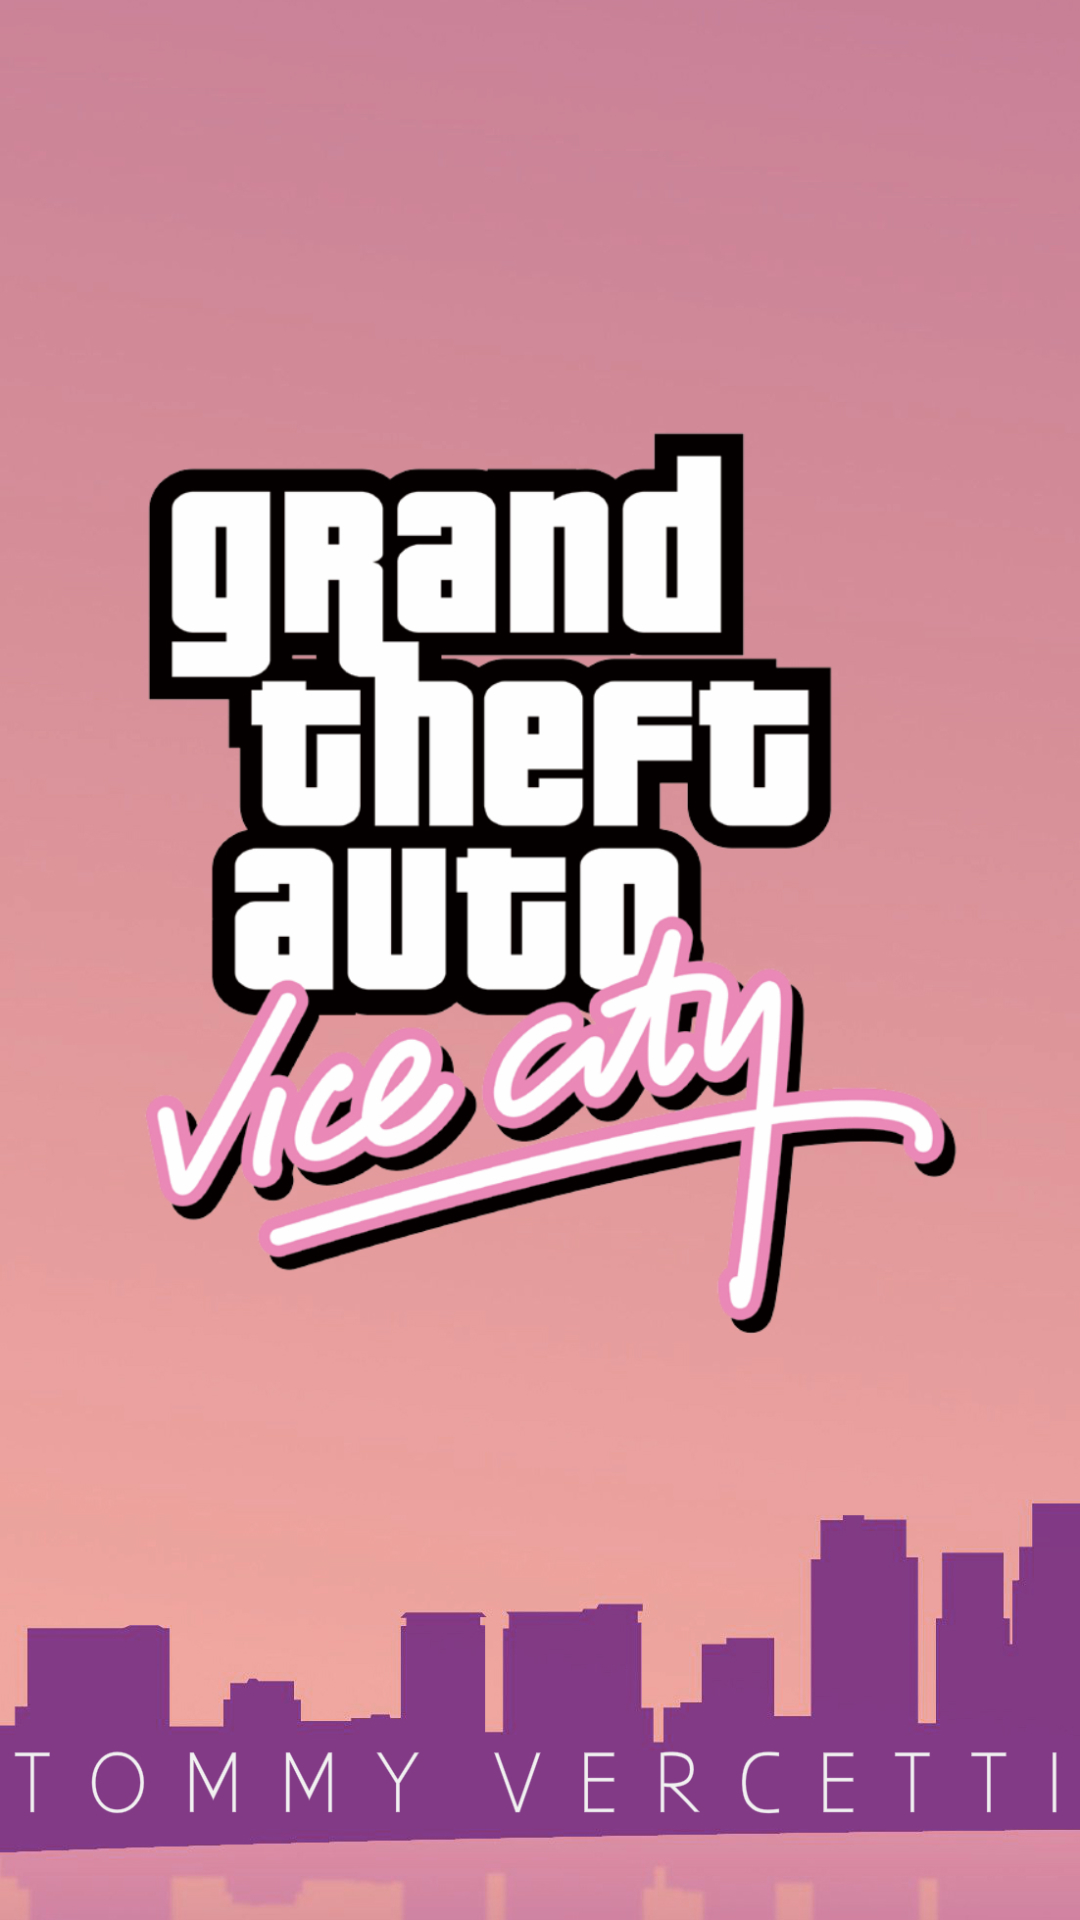 Video Game Grand Theft Auto Vice City 1080x1920 Wallpaper Id